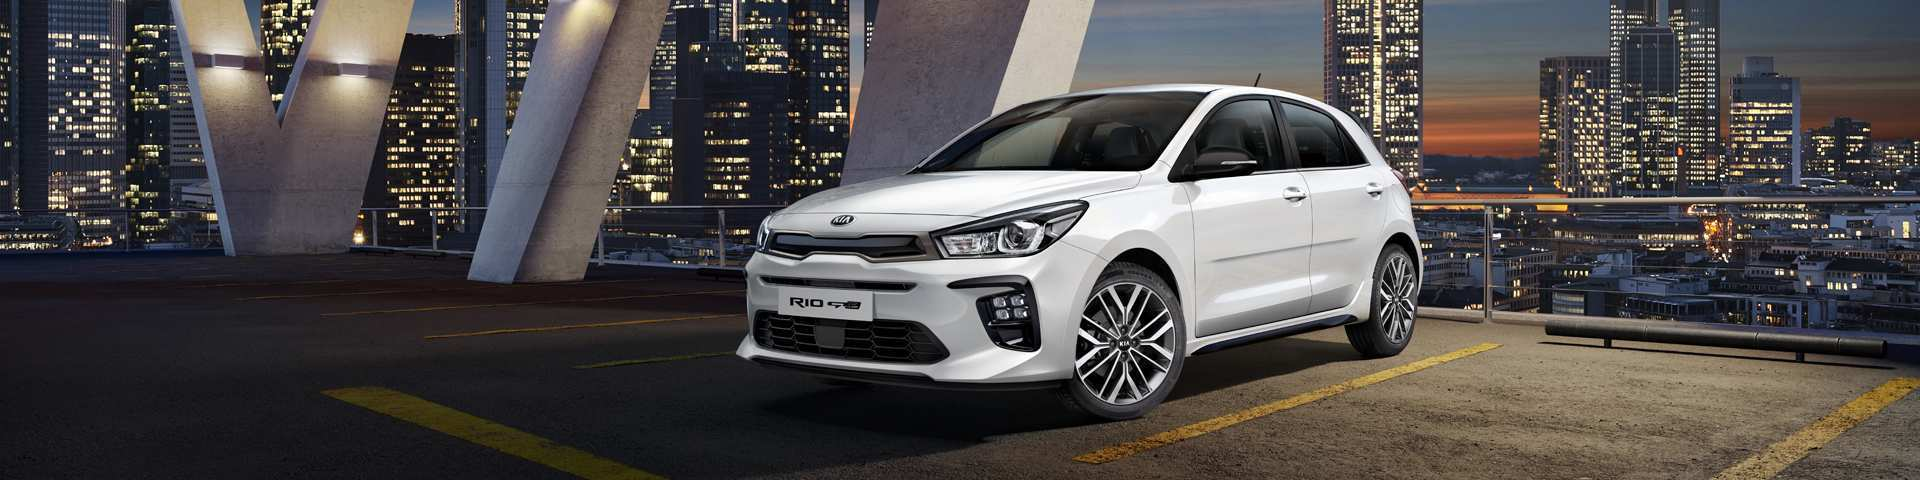 63 All New Kia Rio Gt 2020 Price And Release Date